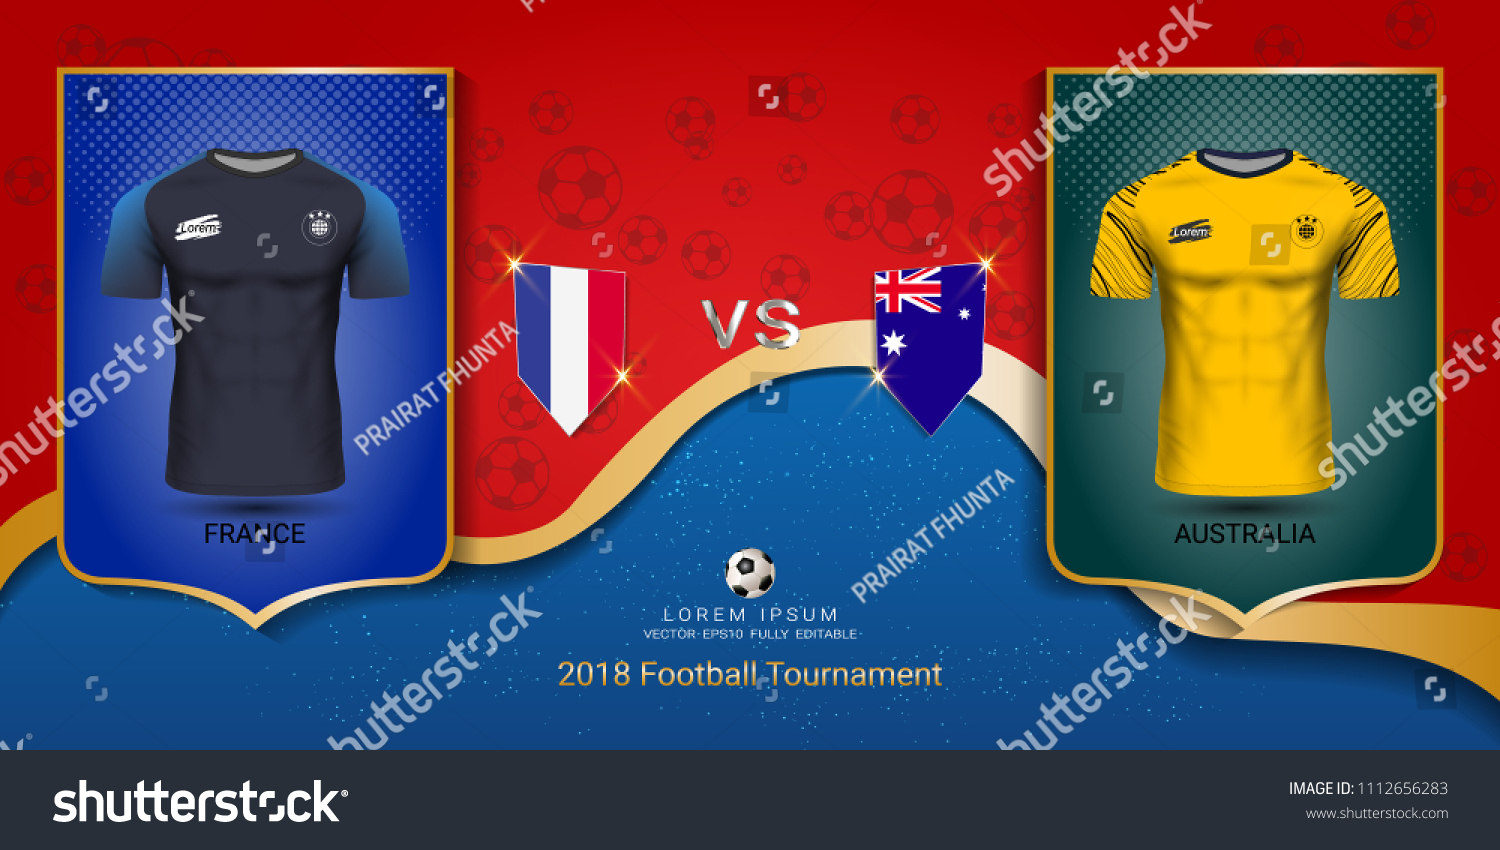 ae2f990897c Football cup 2018 World championship template, France VS Australia, National  team soccer jersey uniforms